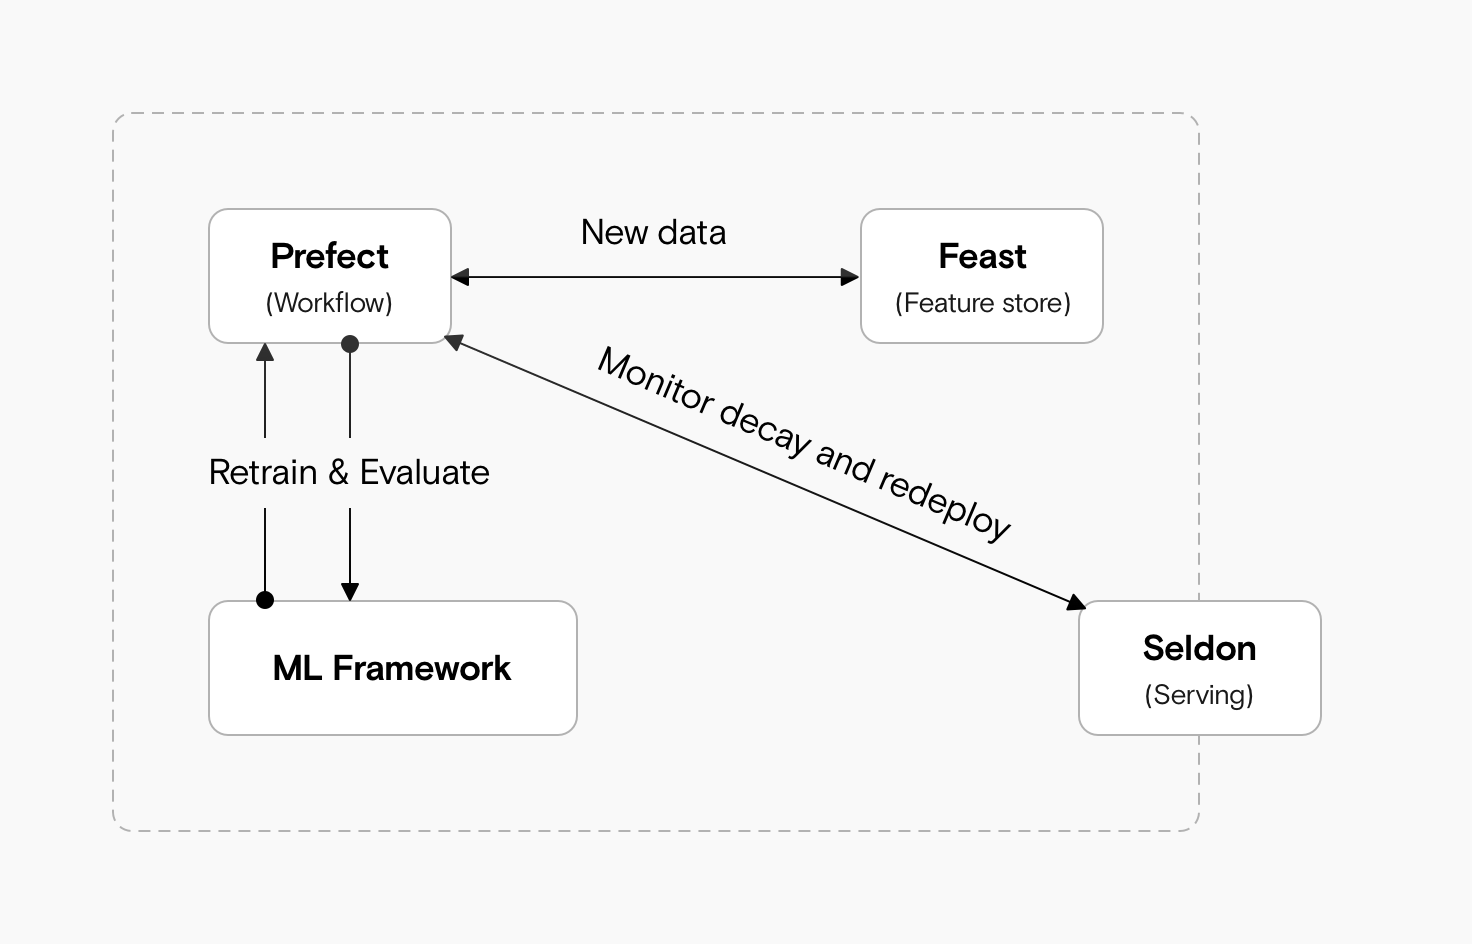 An architecture diagram showing an ML Framework connected to a workflow tool (Prefect), connected to a feature store (Feast) and a model Serving tool (Seldon)